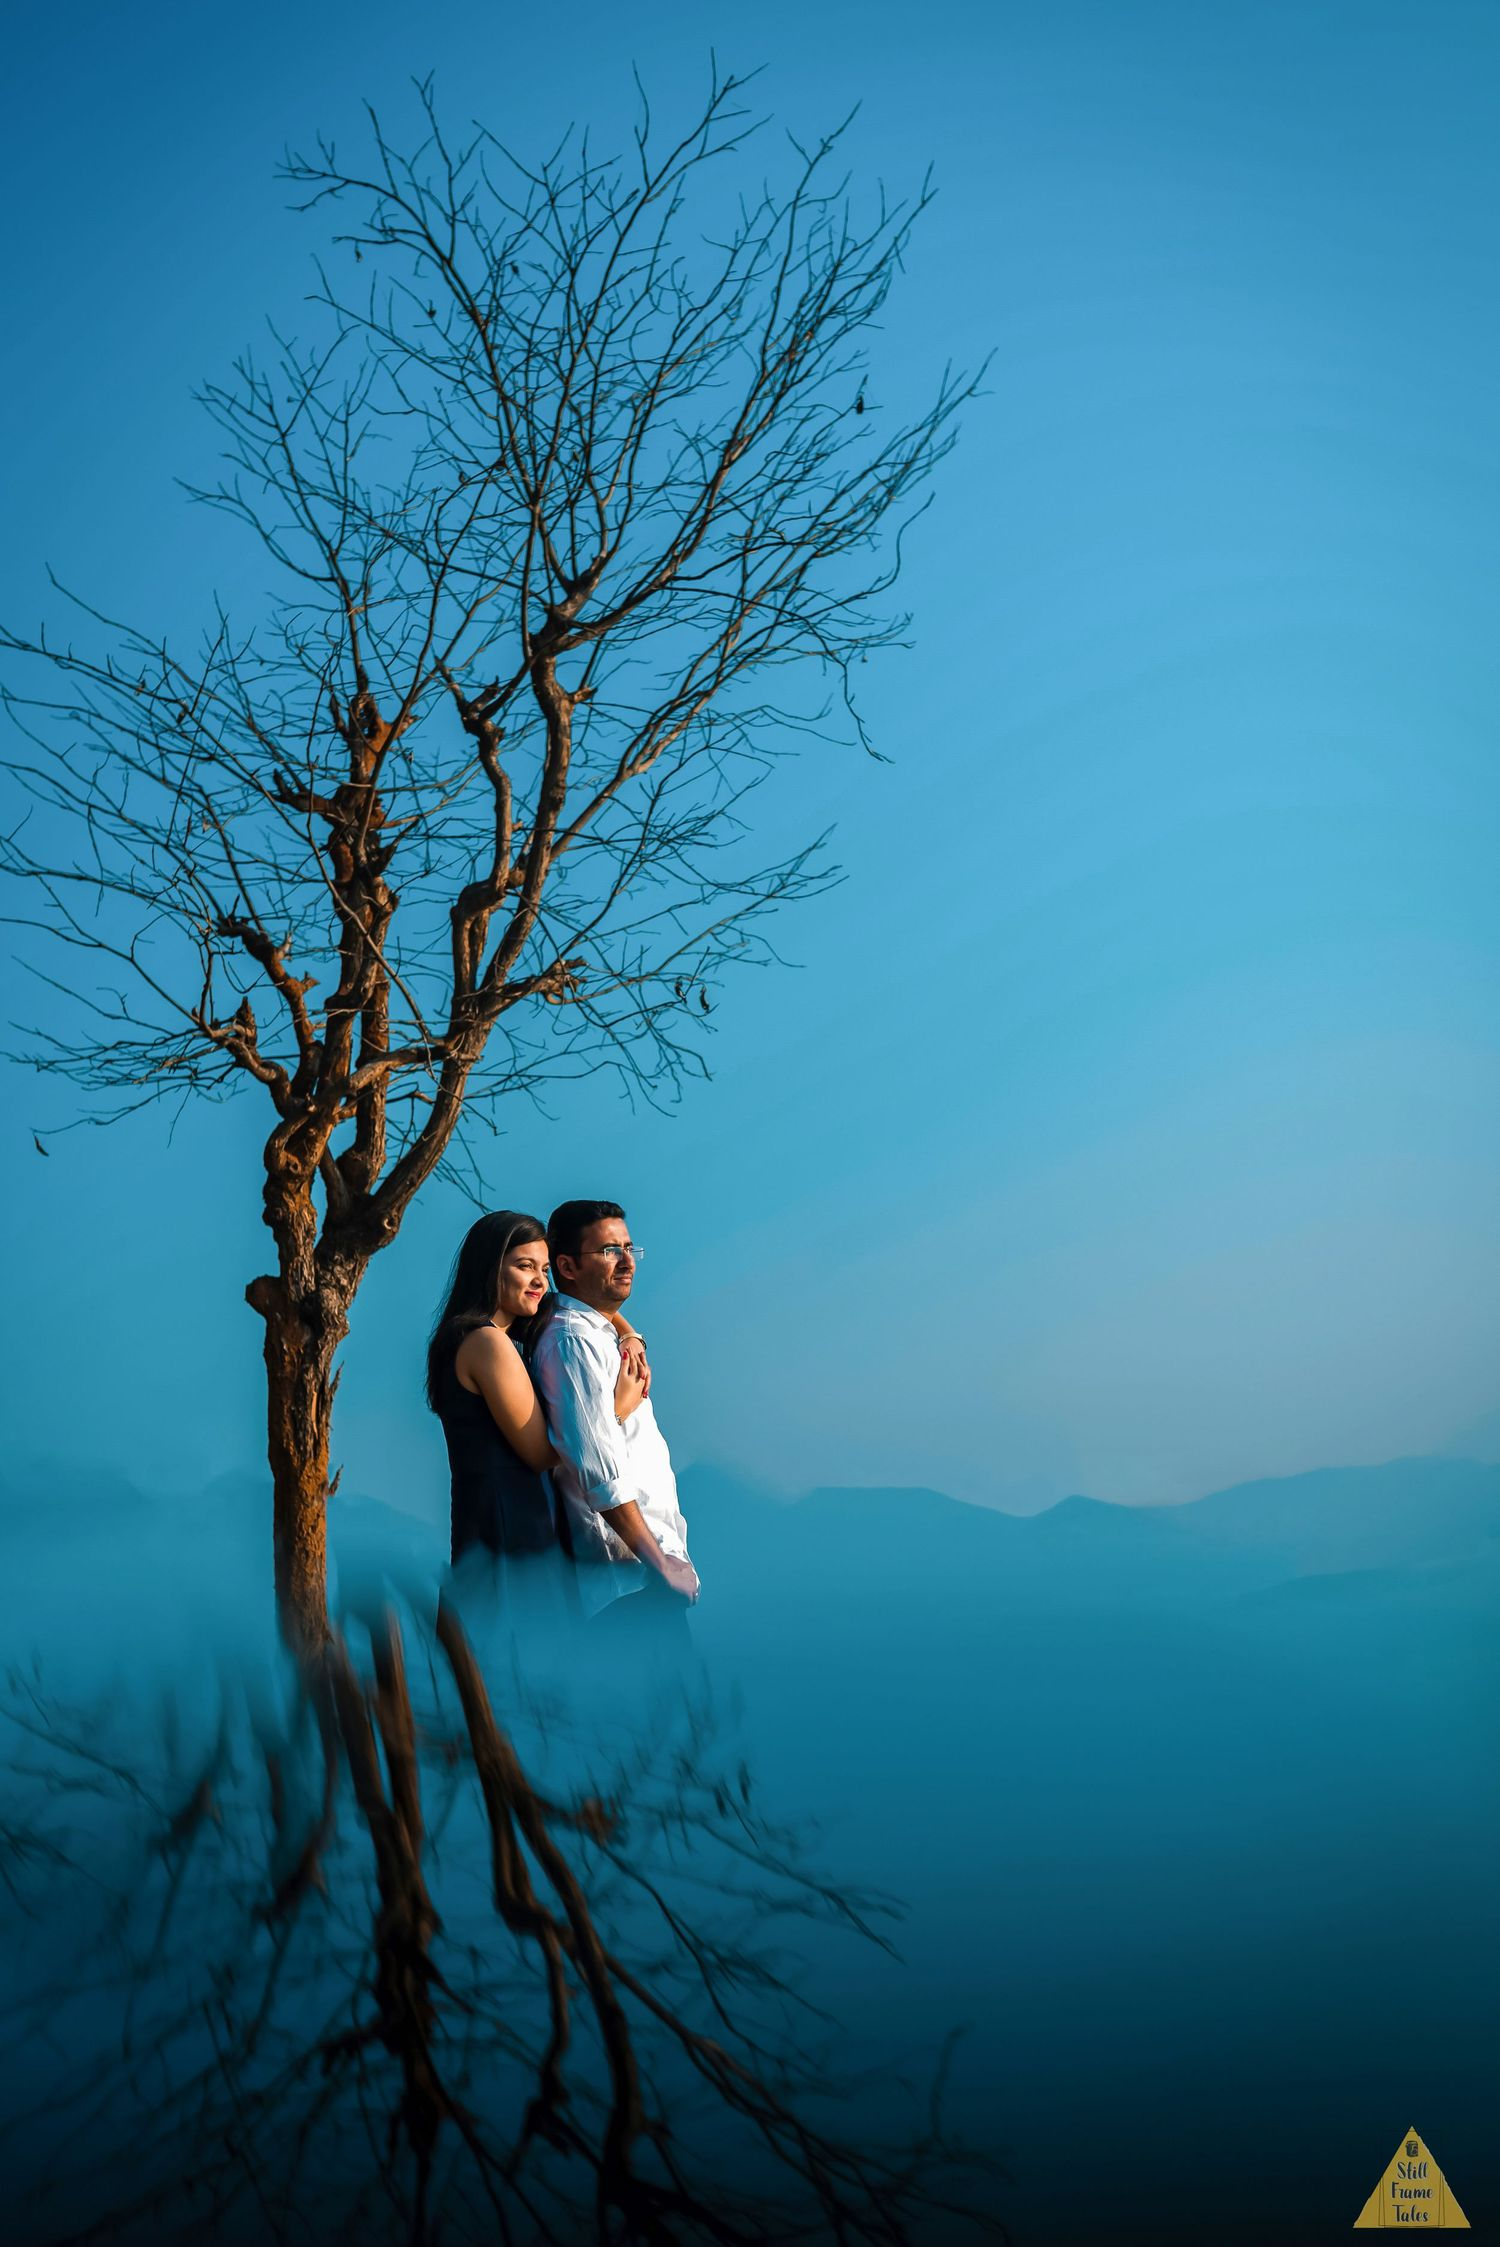 Couple cuddling in sun light beside tree with blue sky background reflection